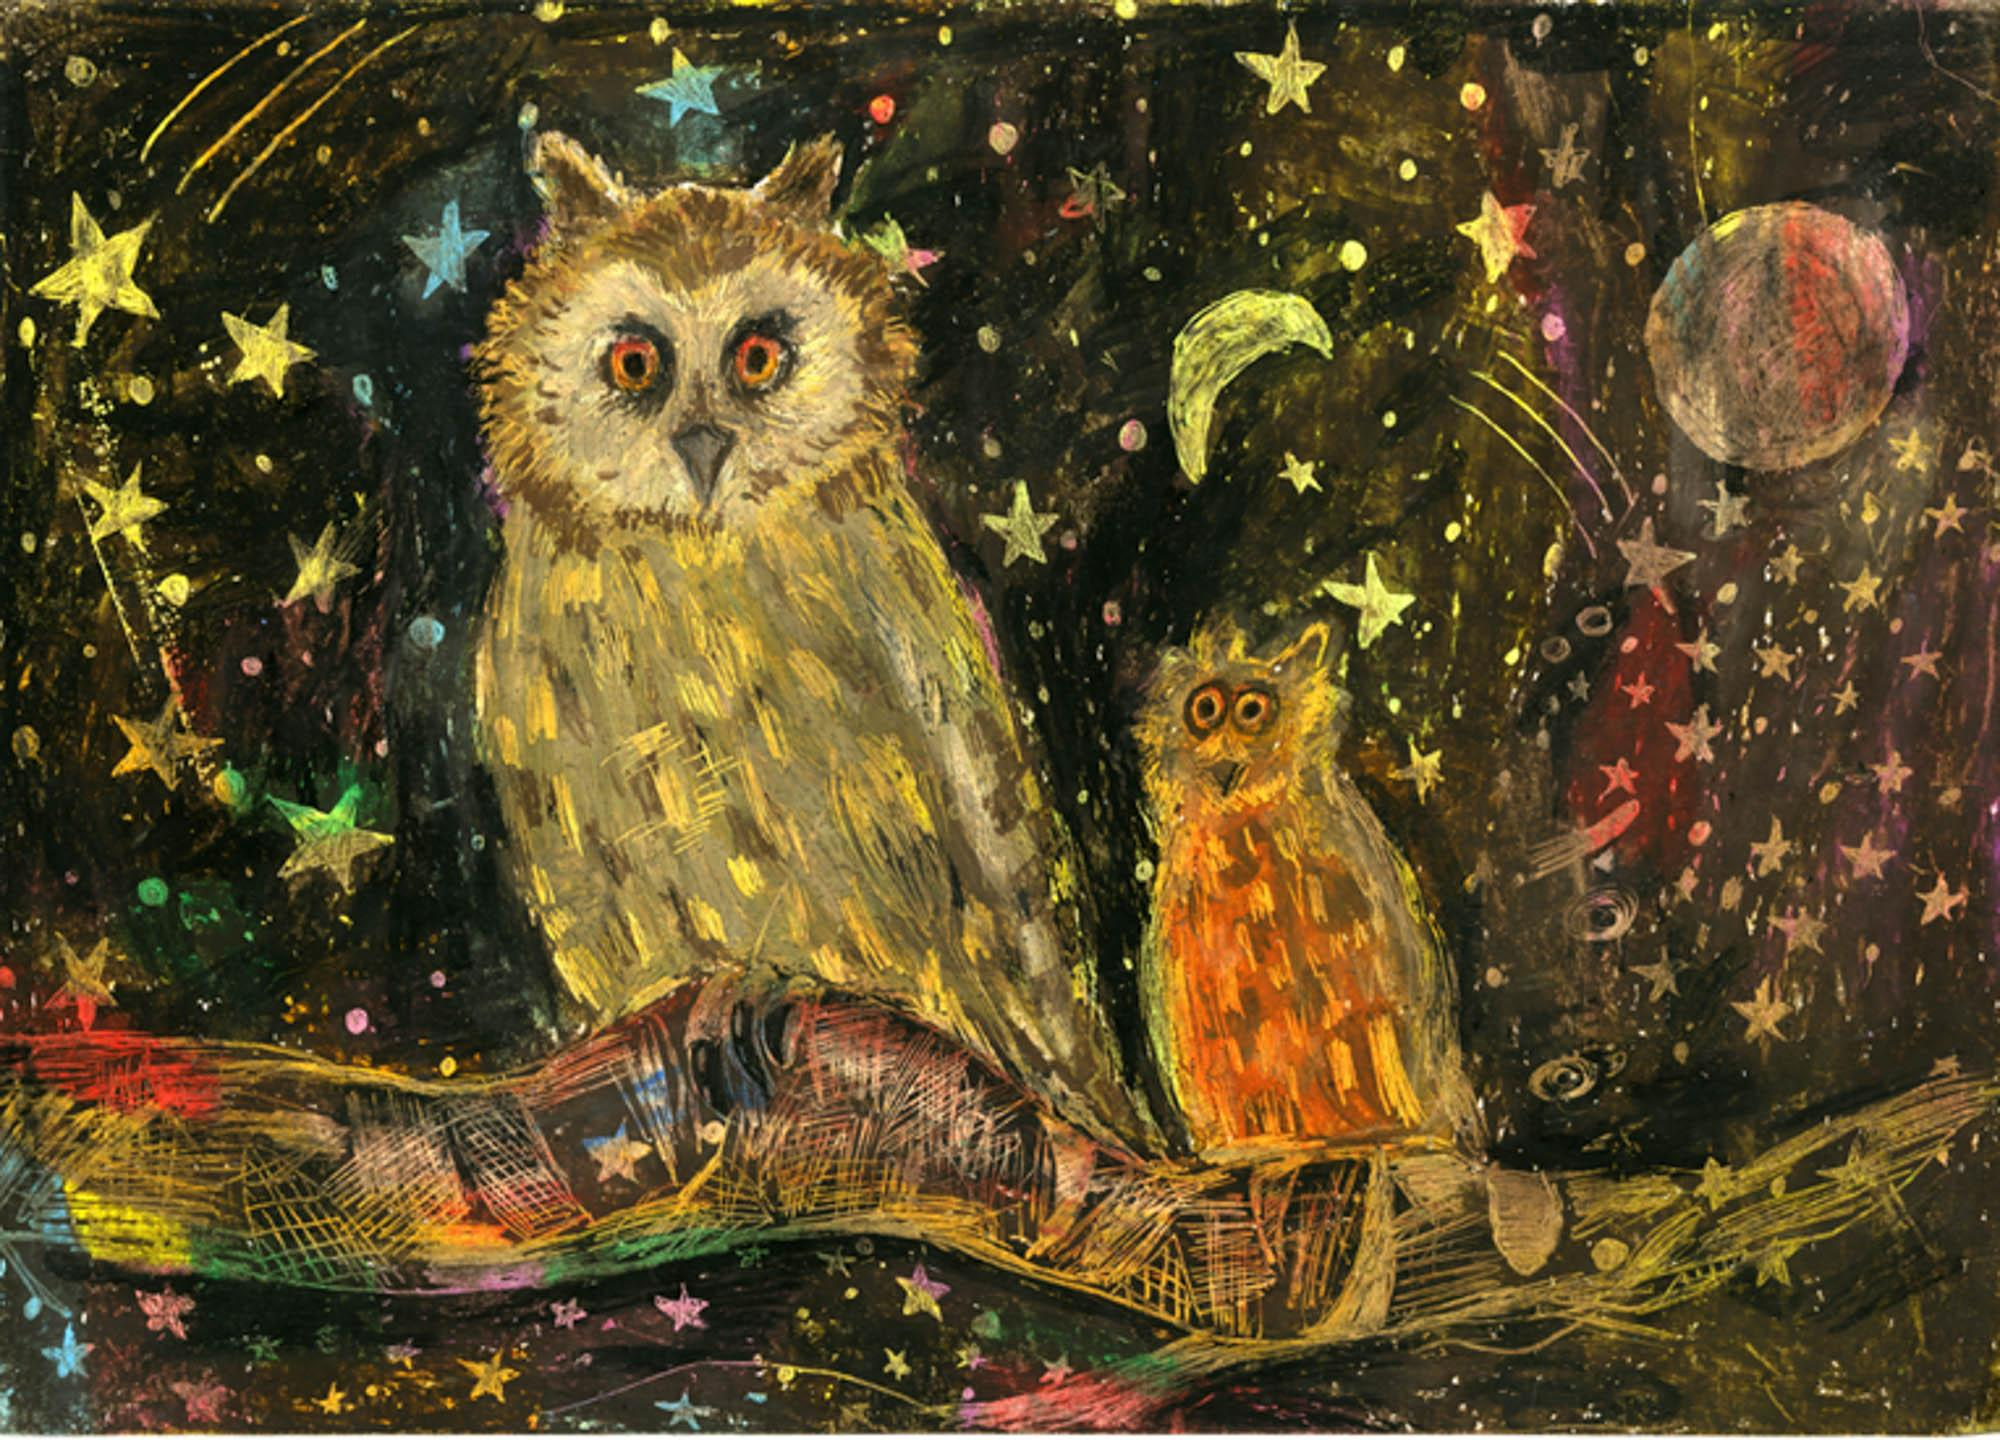 Owl in the Starry Night, Sohee Park, age 8 Ridgefield, New Jersey (Submitted Independently), 2013 River of Words Finalist